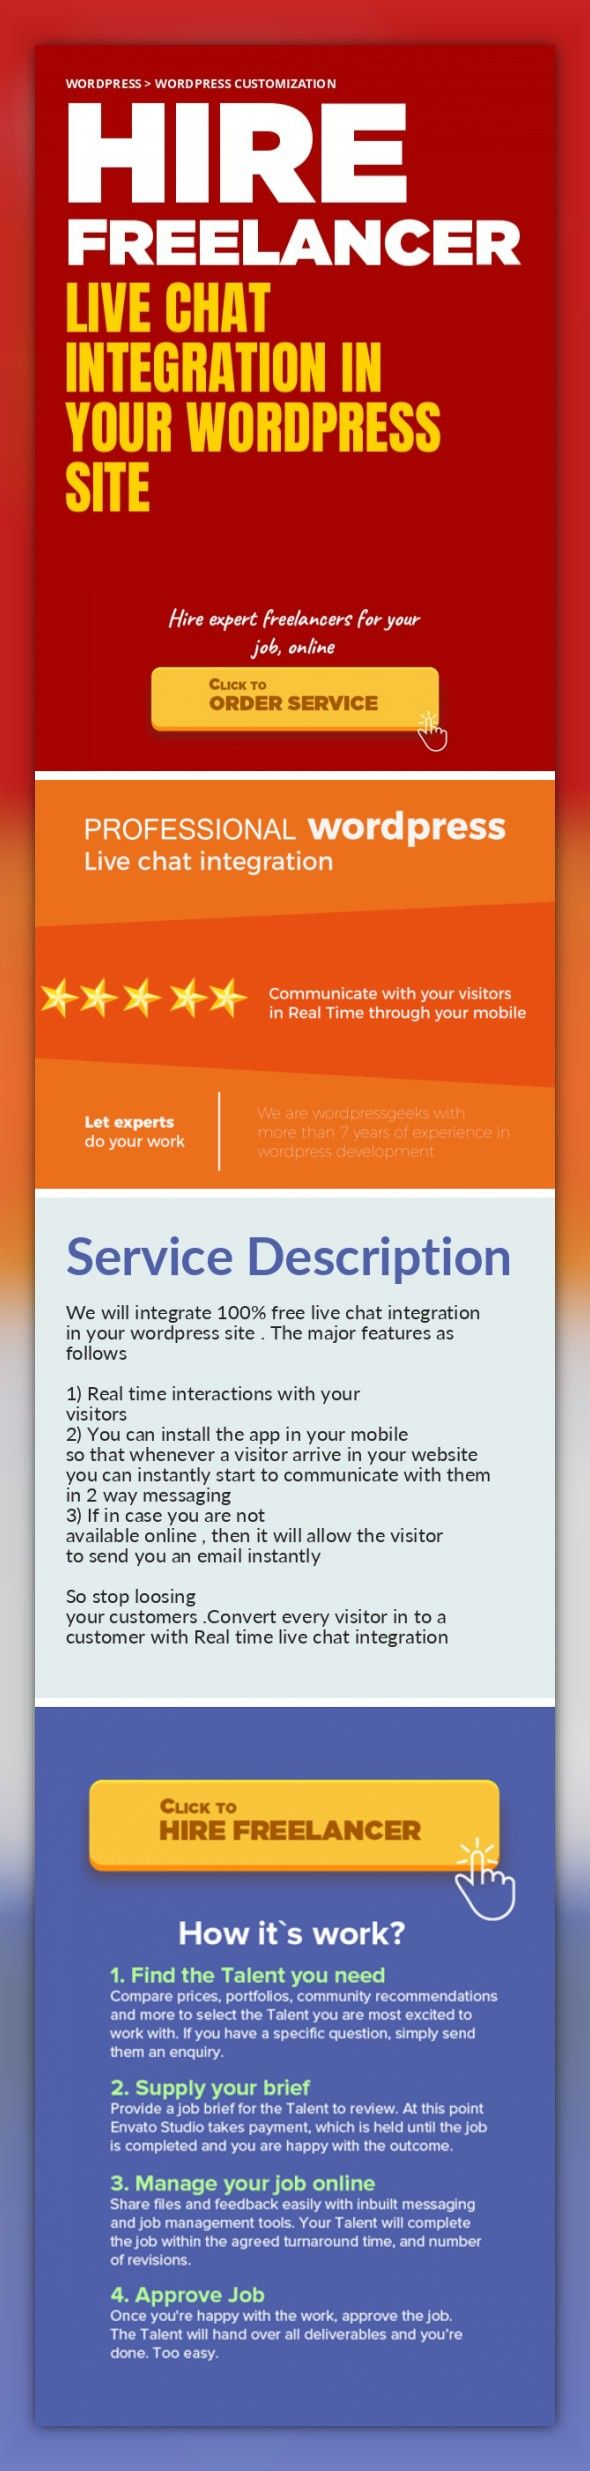 Live Chat Integration in your wordpress site WordPress, WordPress Customization   We will integrate 100% free live chat integration in your wordpress site . The major features as follows    1) Real time interactions with your visitors  2) You can install the app in your mobile so that whenever a visitor arrive in your website you can instantly start to communicate with them in 2 way messaging   3)...